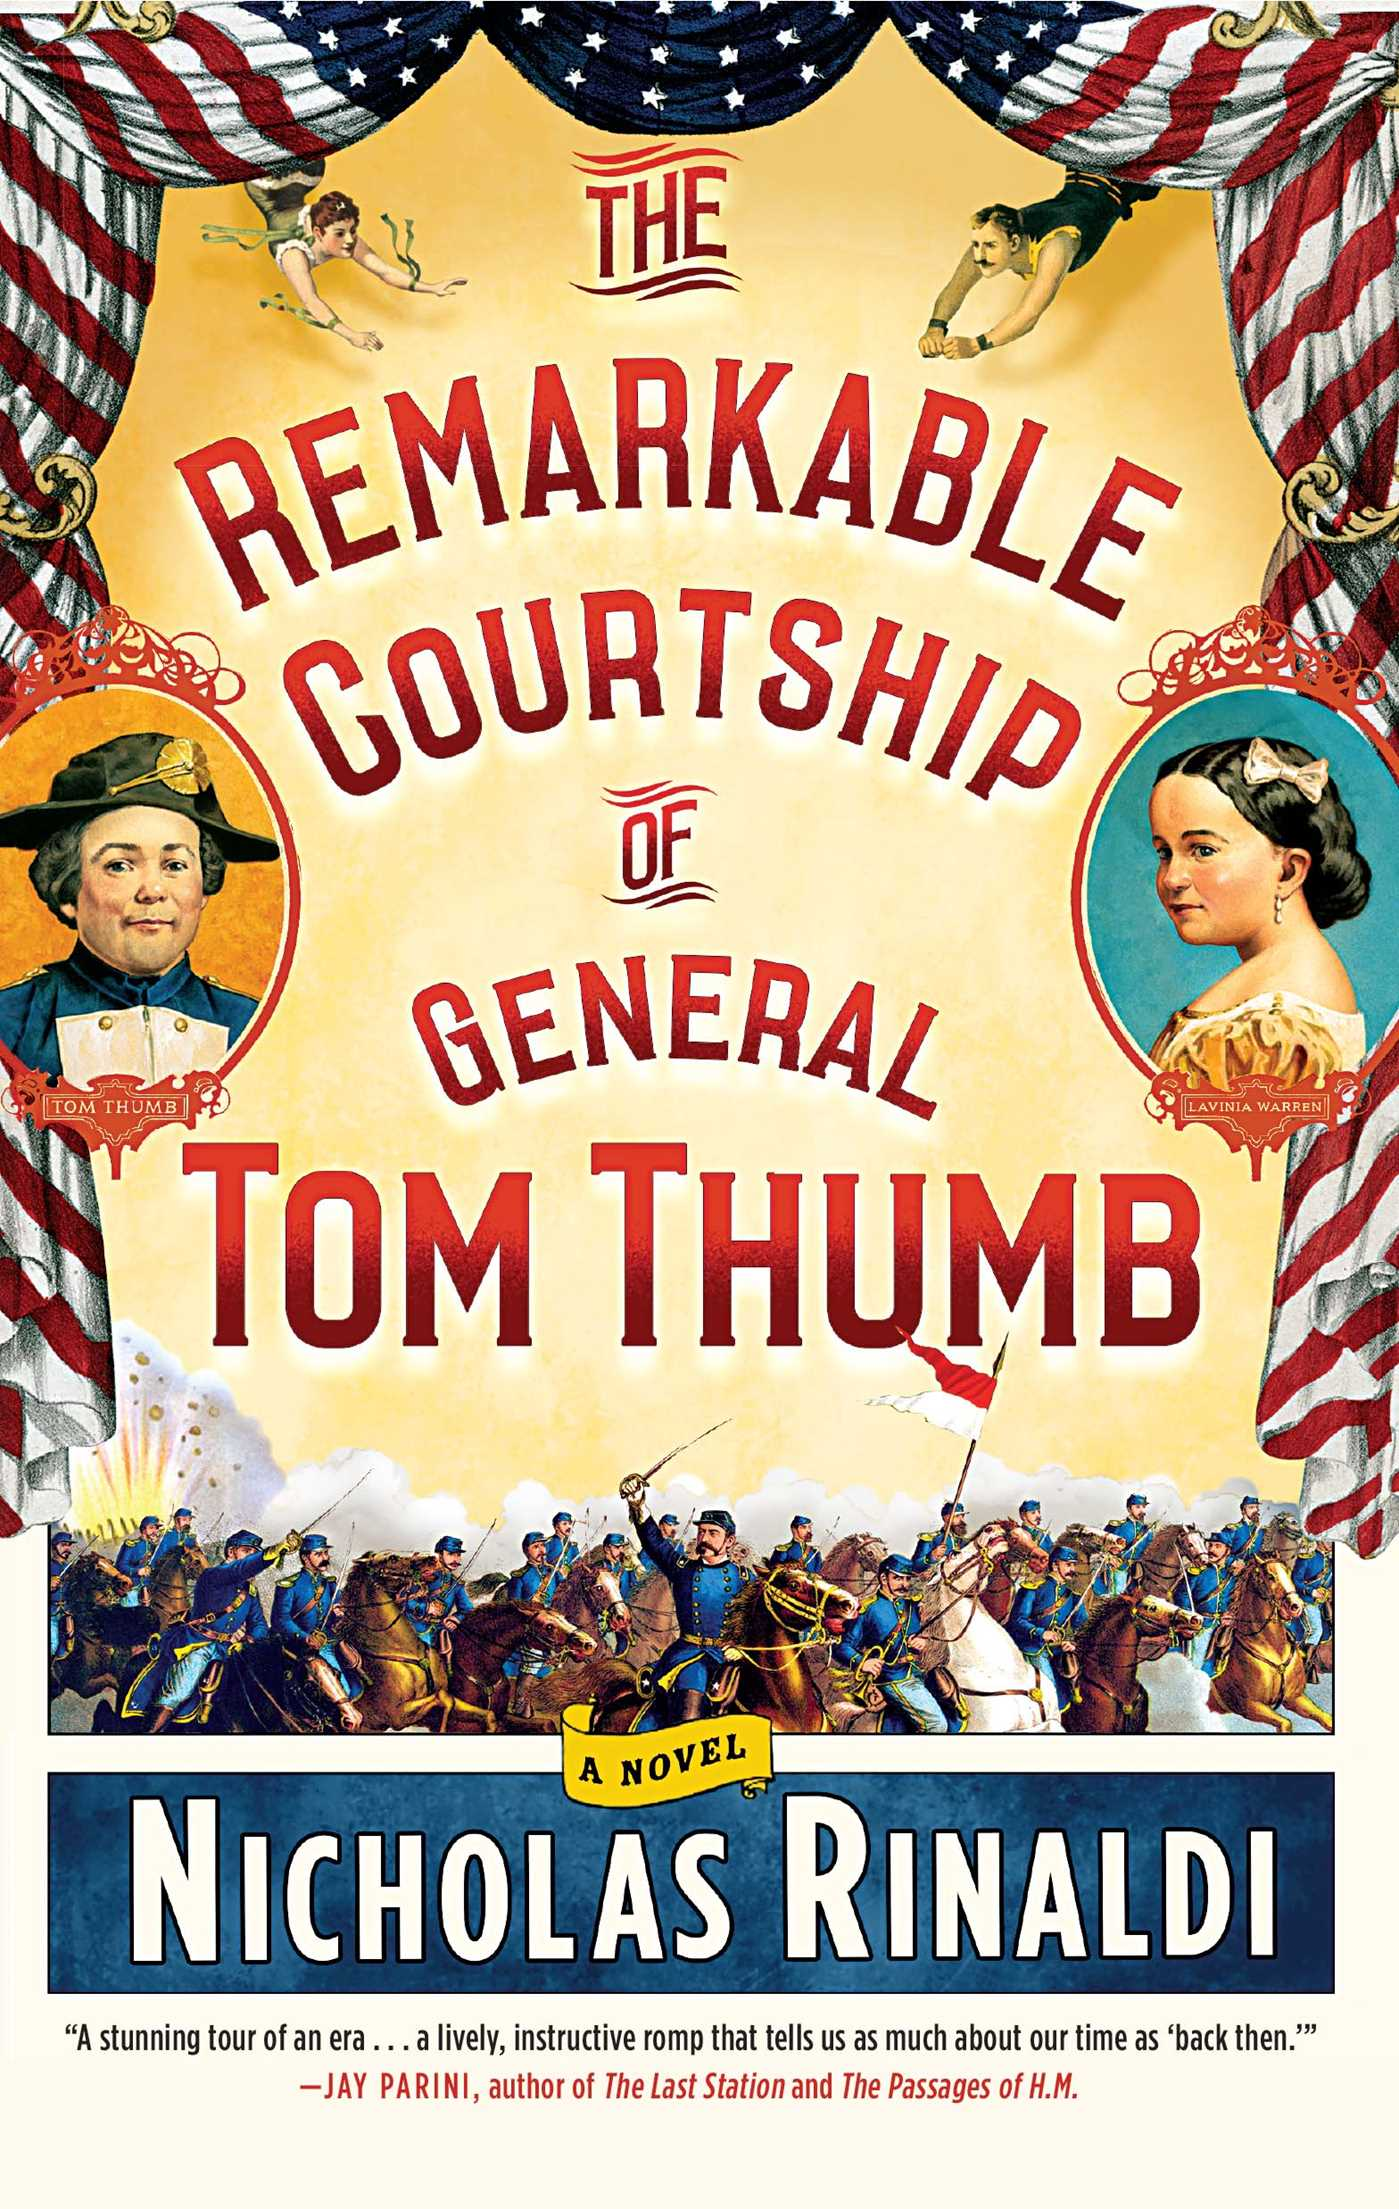 The remarkable courtship of general tom thumb 9781476727332 hr